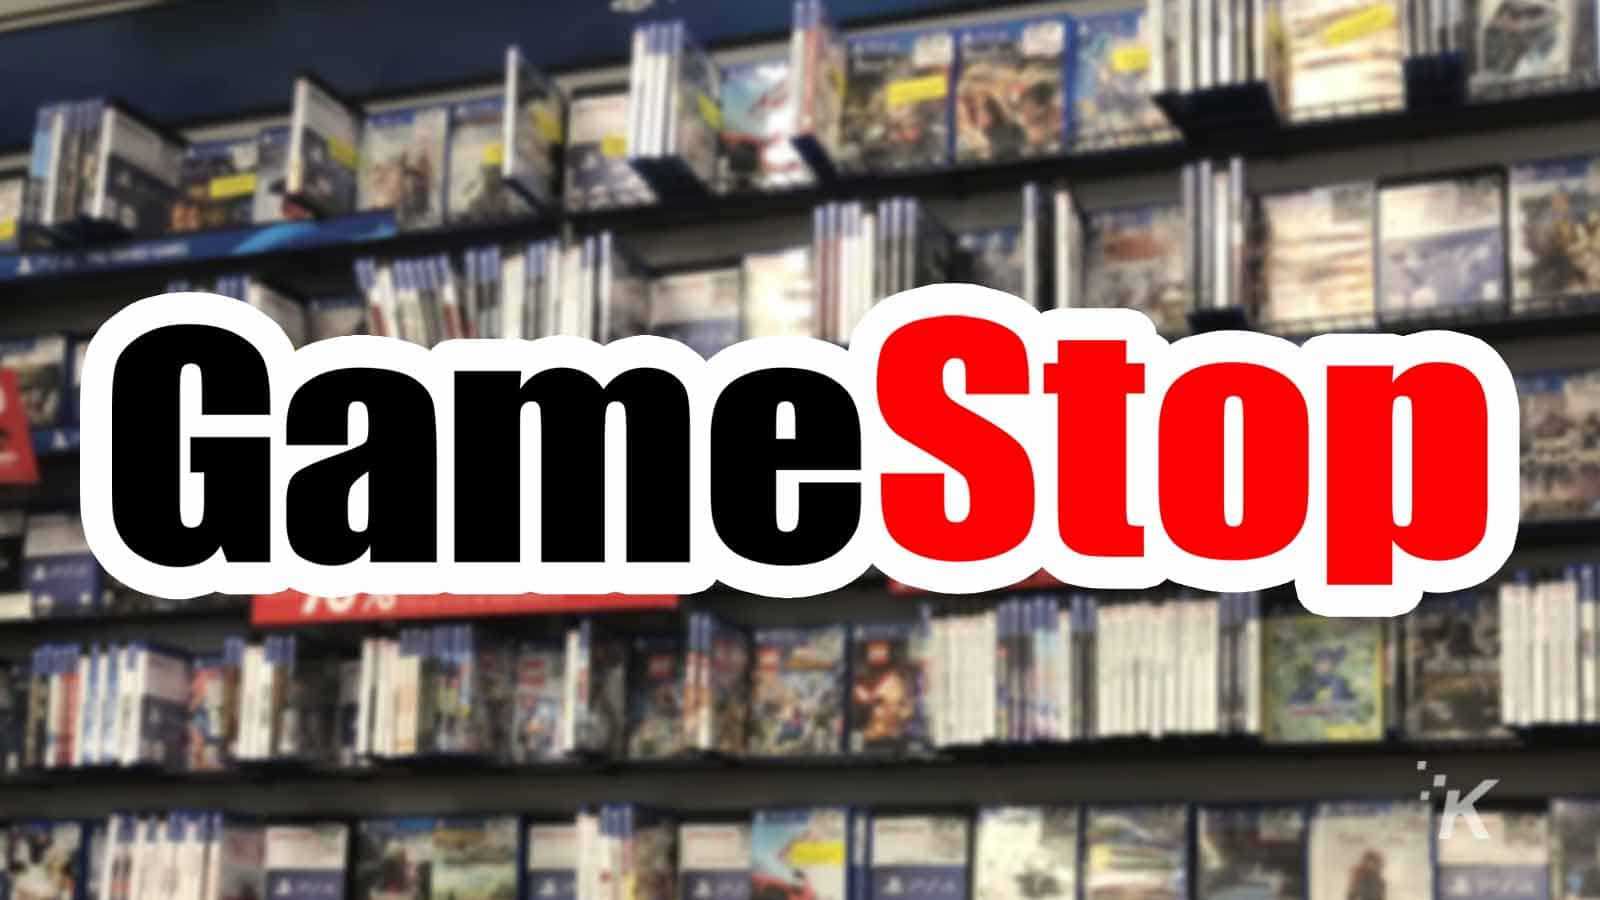 gamestop logo with games in the background